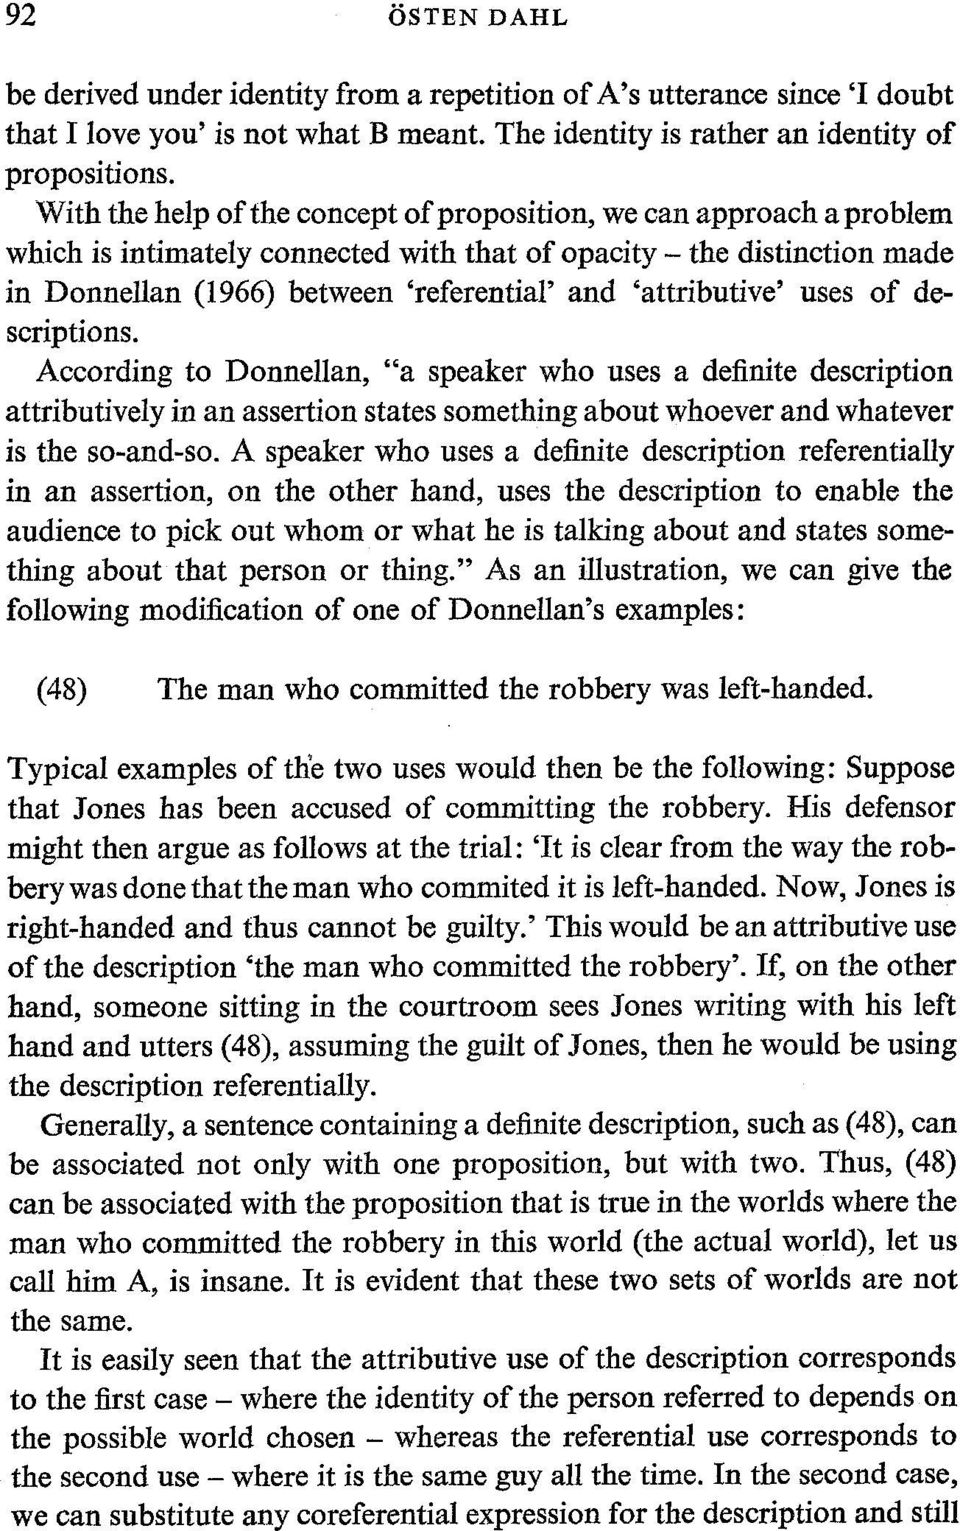 "'attributive' uses of descriptions. According to DonneUan, ""a speaker who uses a definite description attributively in an assertion states something about whoever and whatever is the so-and-so."